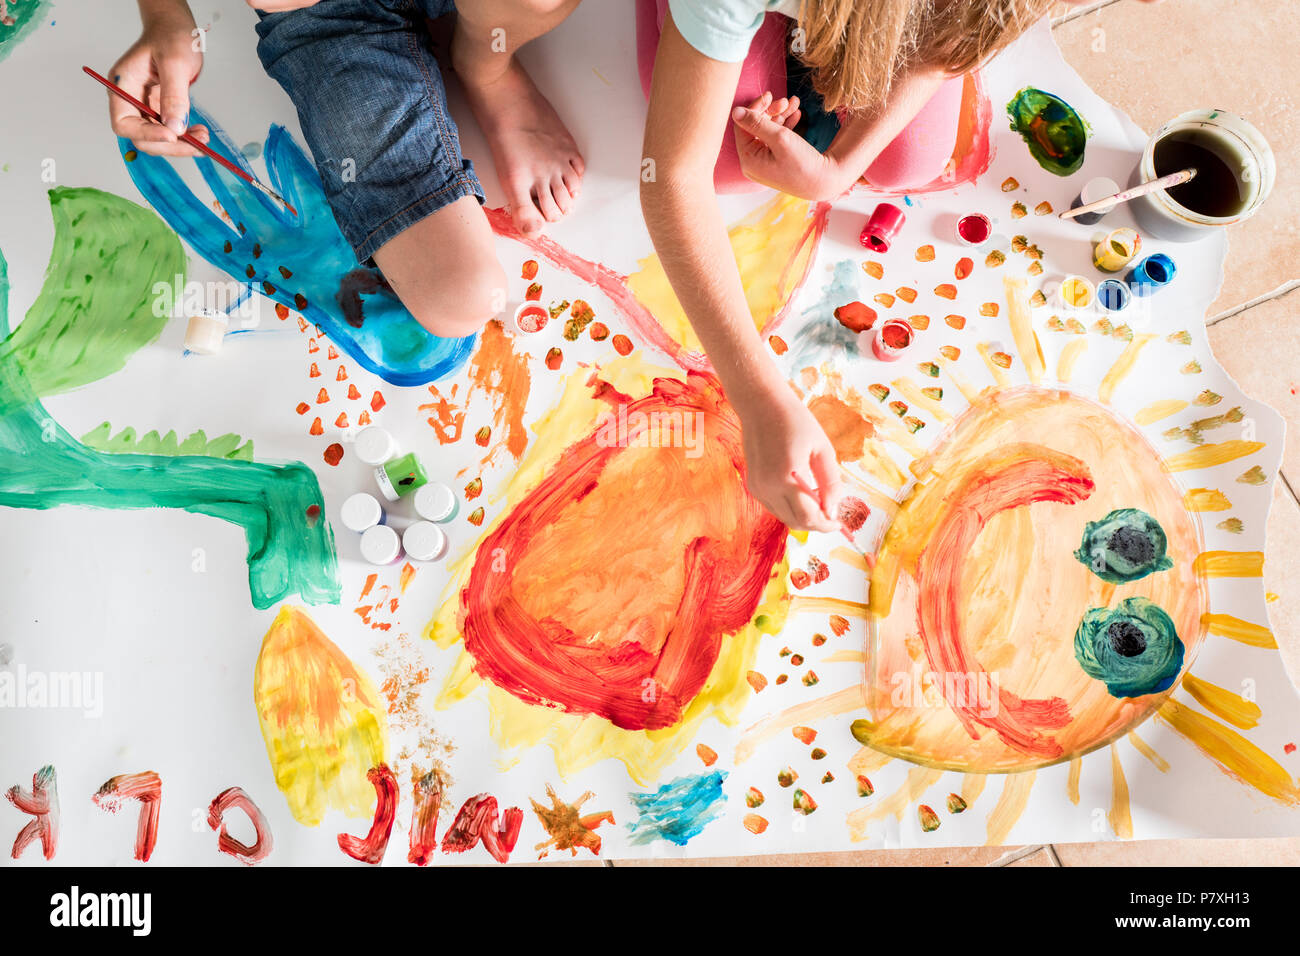 0f7043ce3 Kids Painting Stock Photos & Kids Painting Stock Images - Alamy